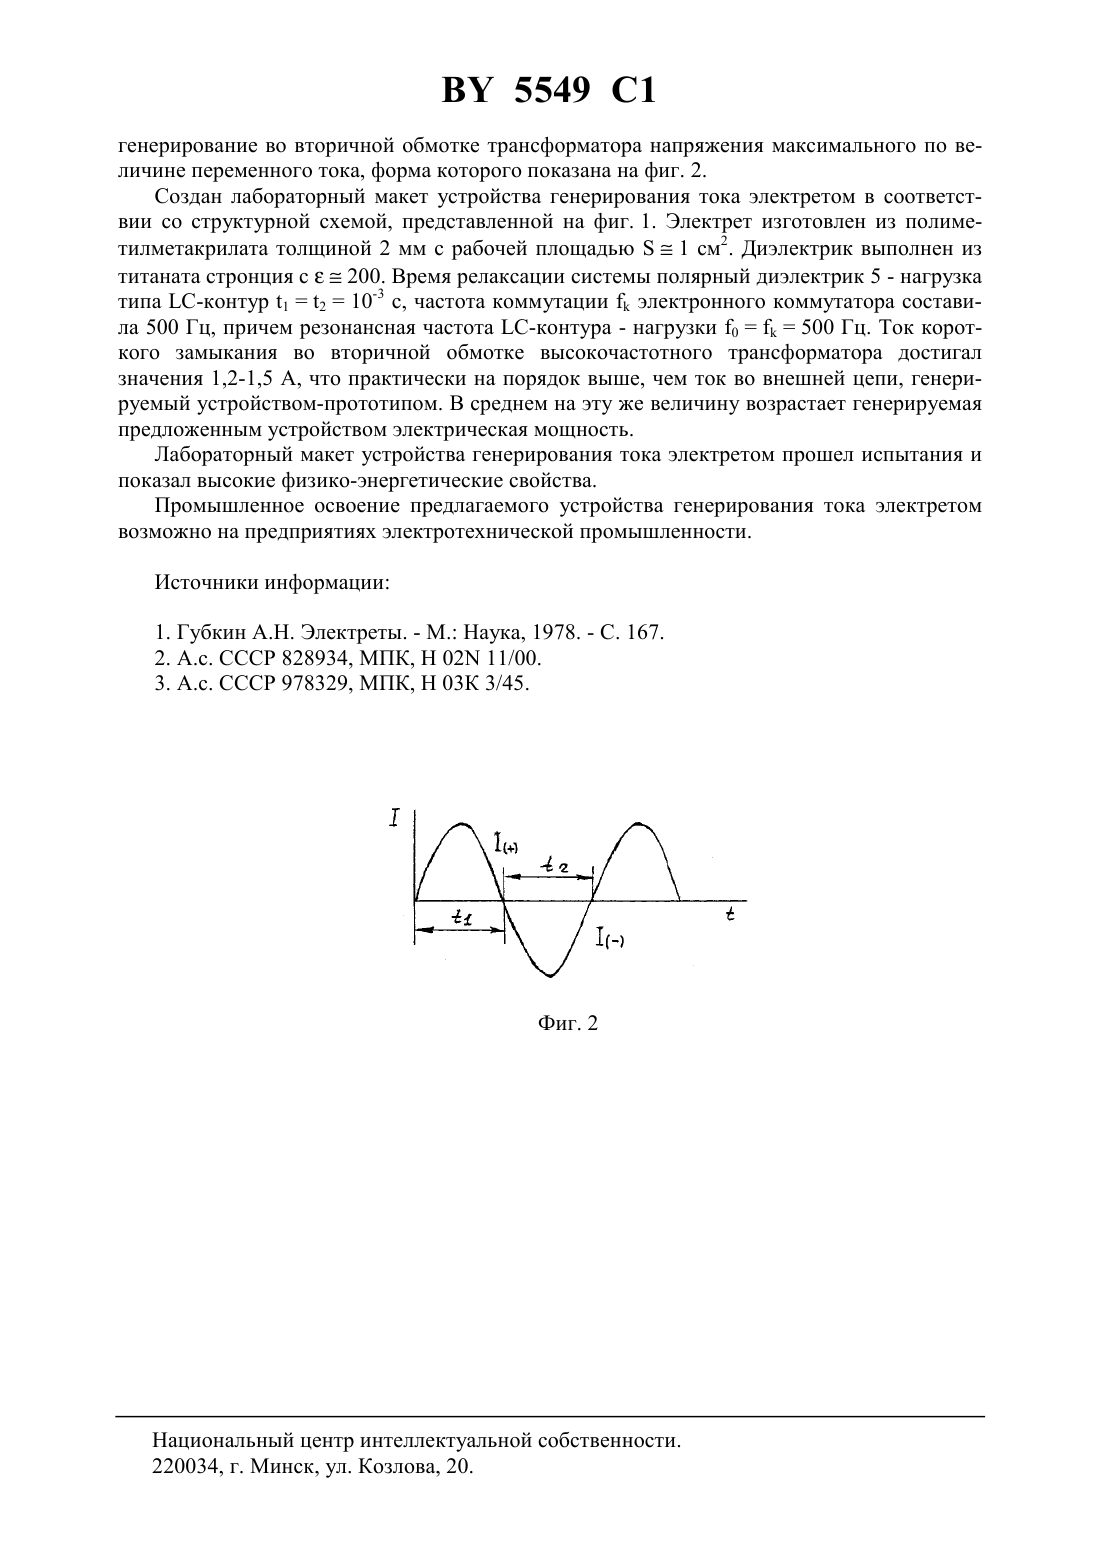 http://bypatents.com/patents/5549-ustrojjstvo-generirovaniya-toka-elektretom-4.png